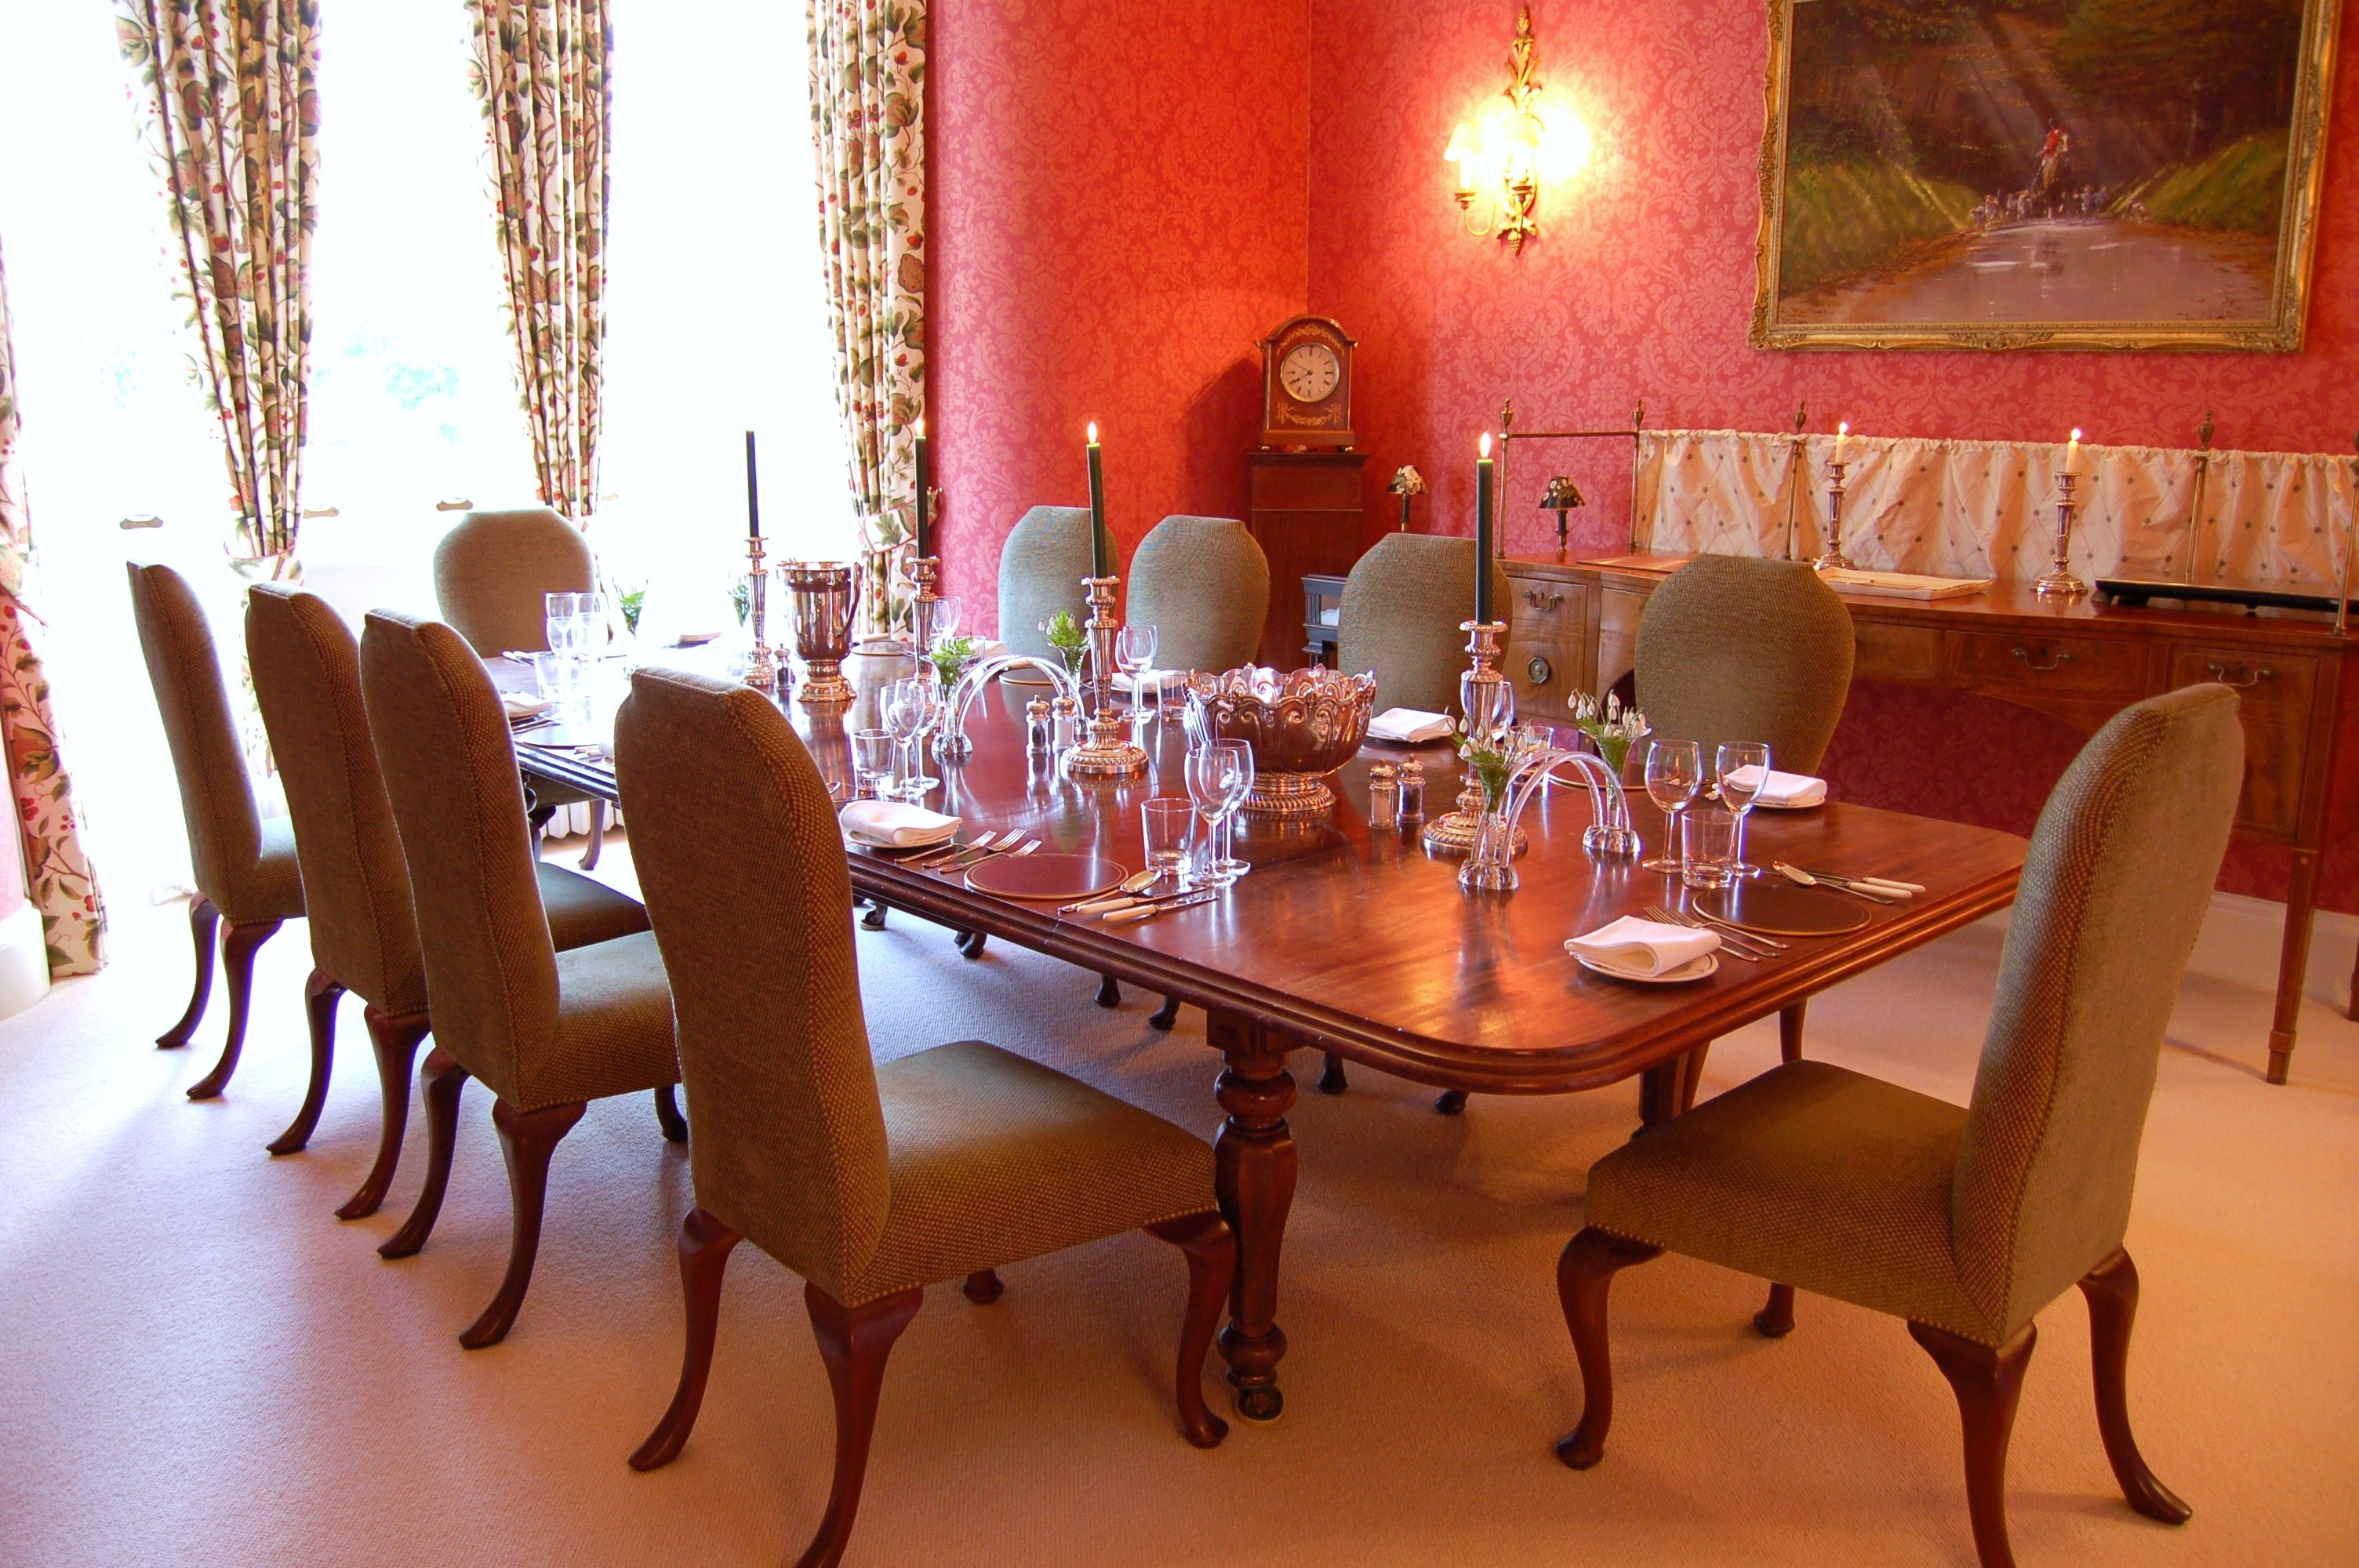 HILLHOUSE - East Wing Dining Room